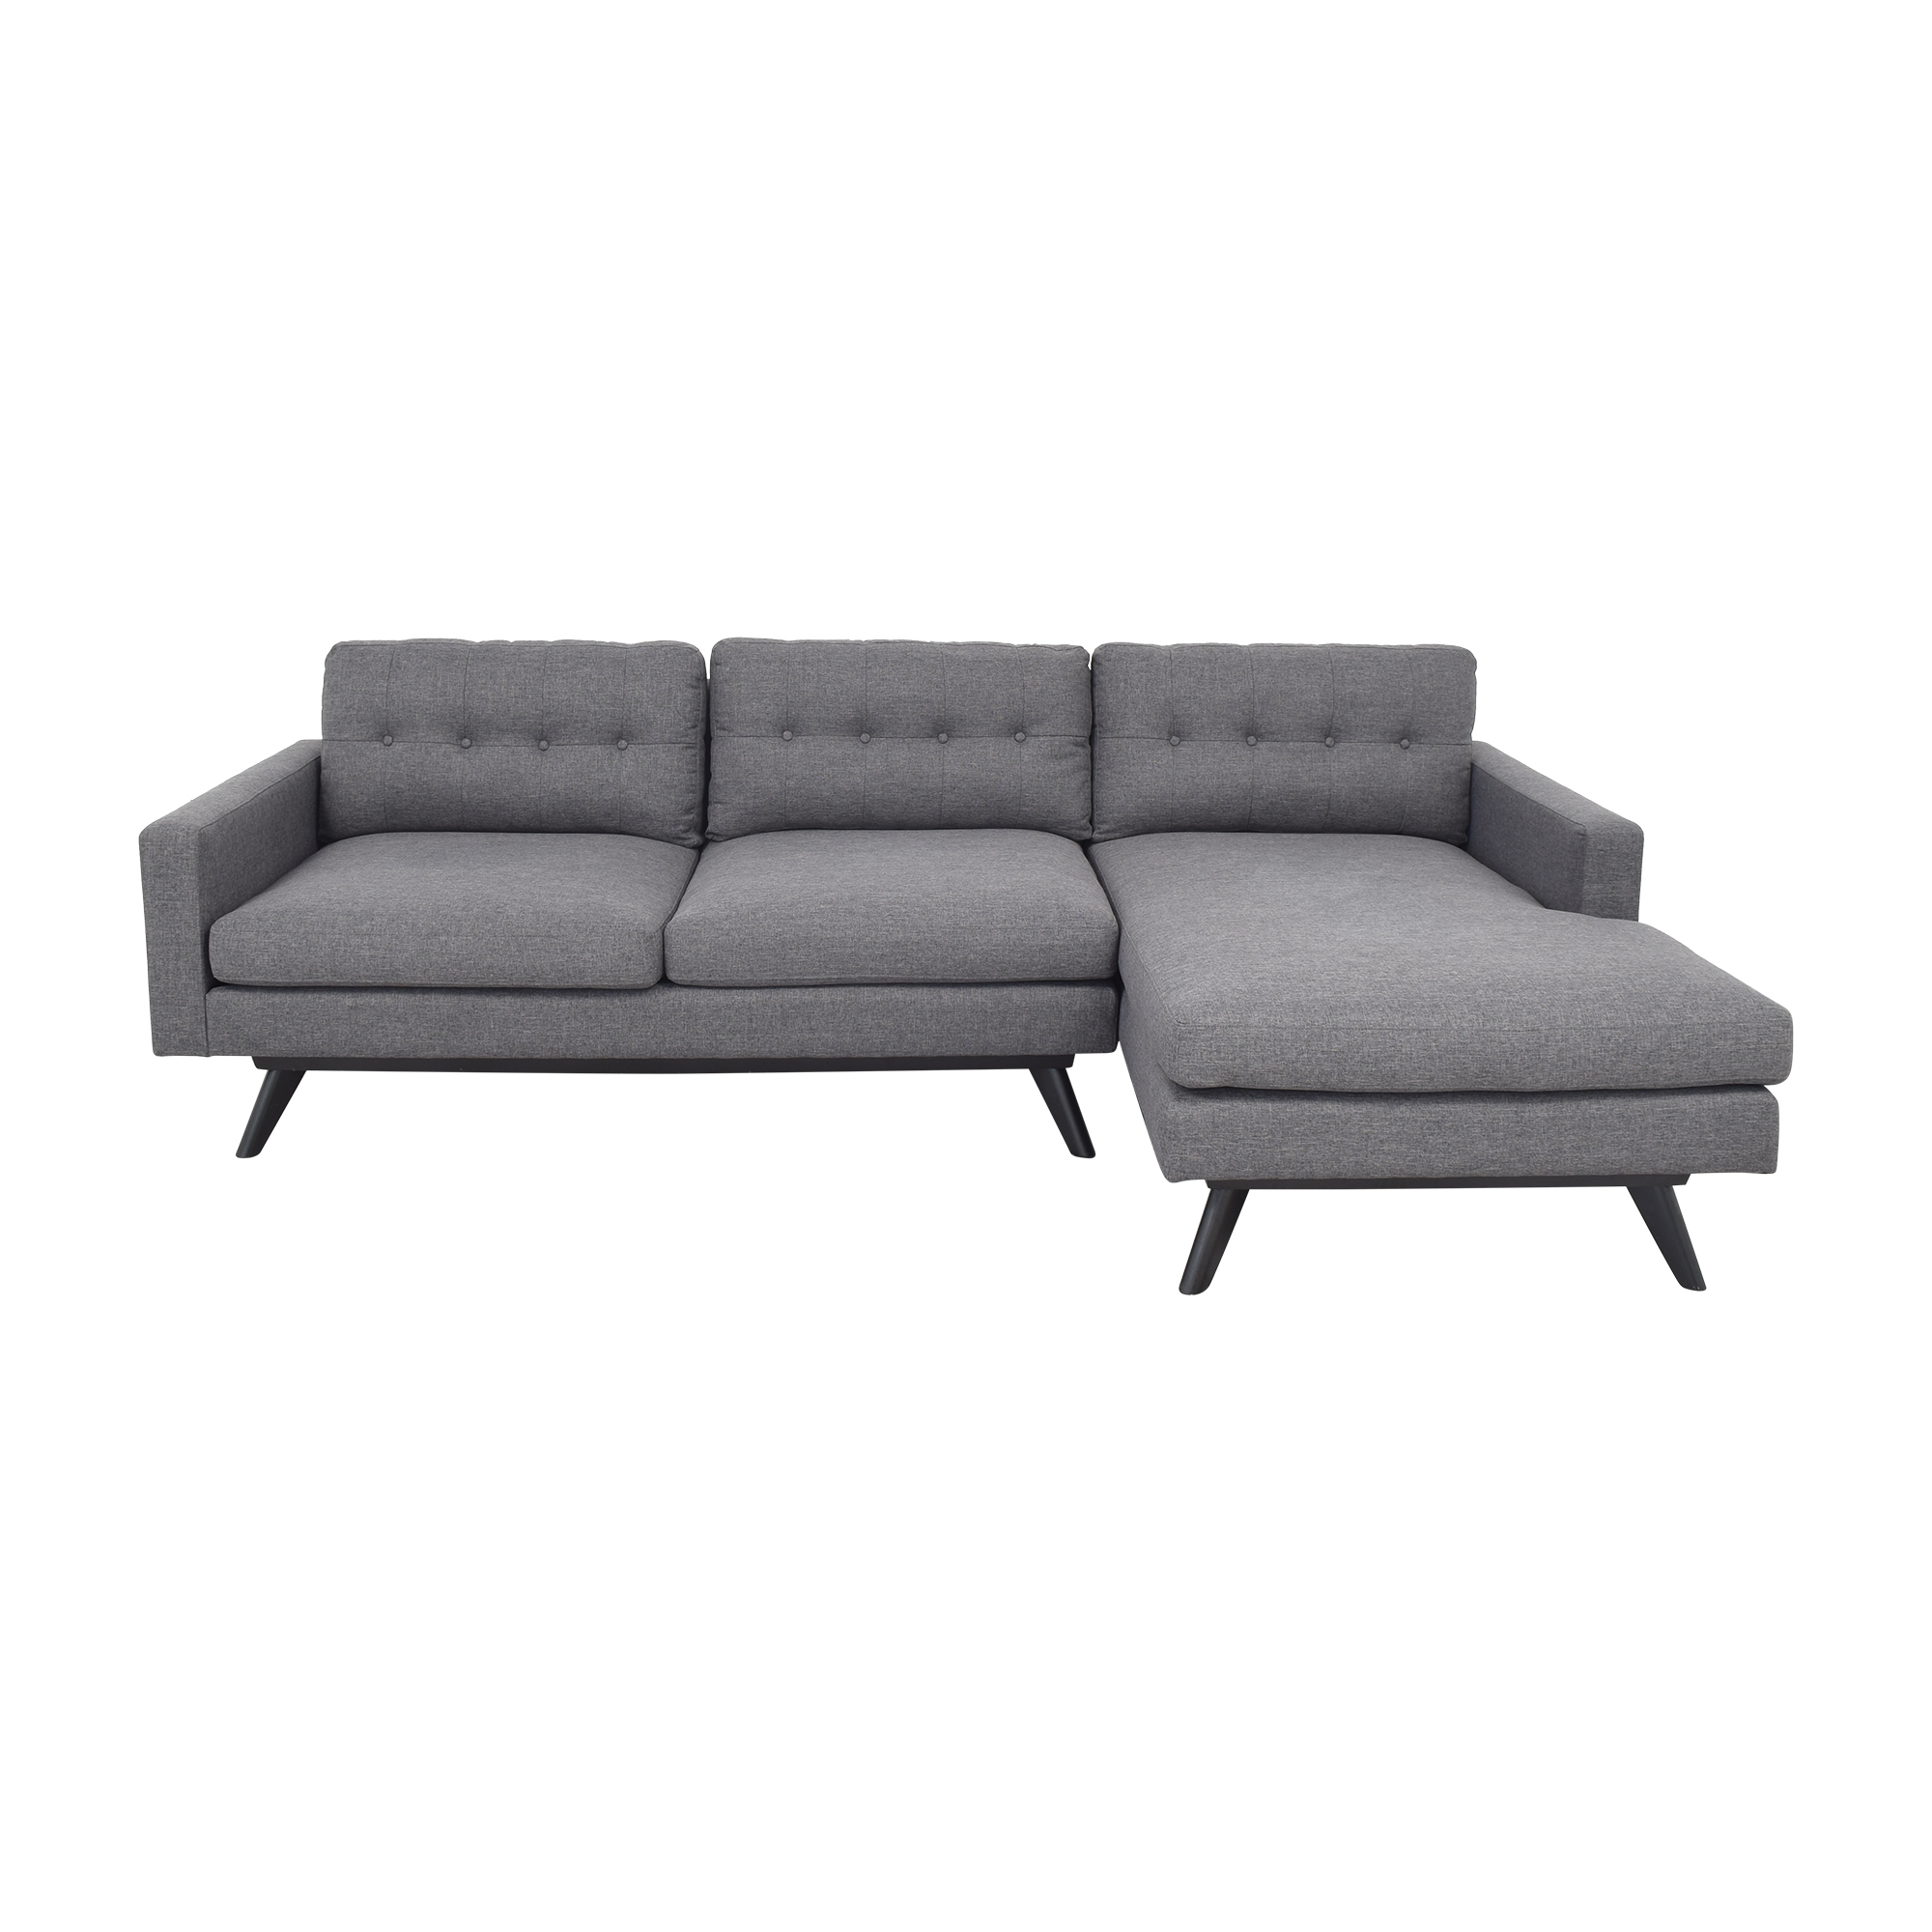 Mid-Century Modern Chaise Sectional Sofa / Sofas